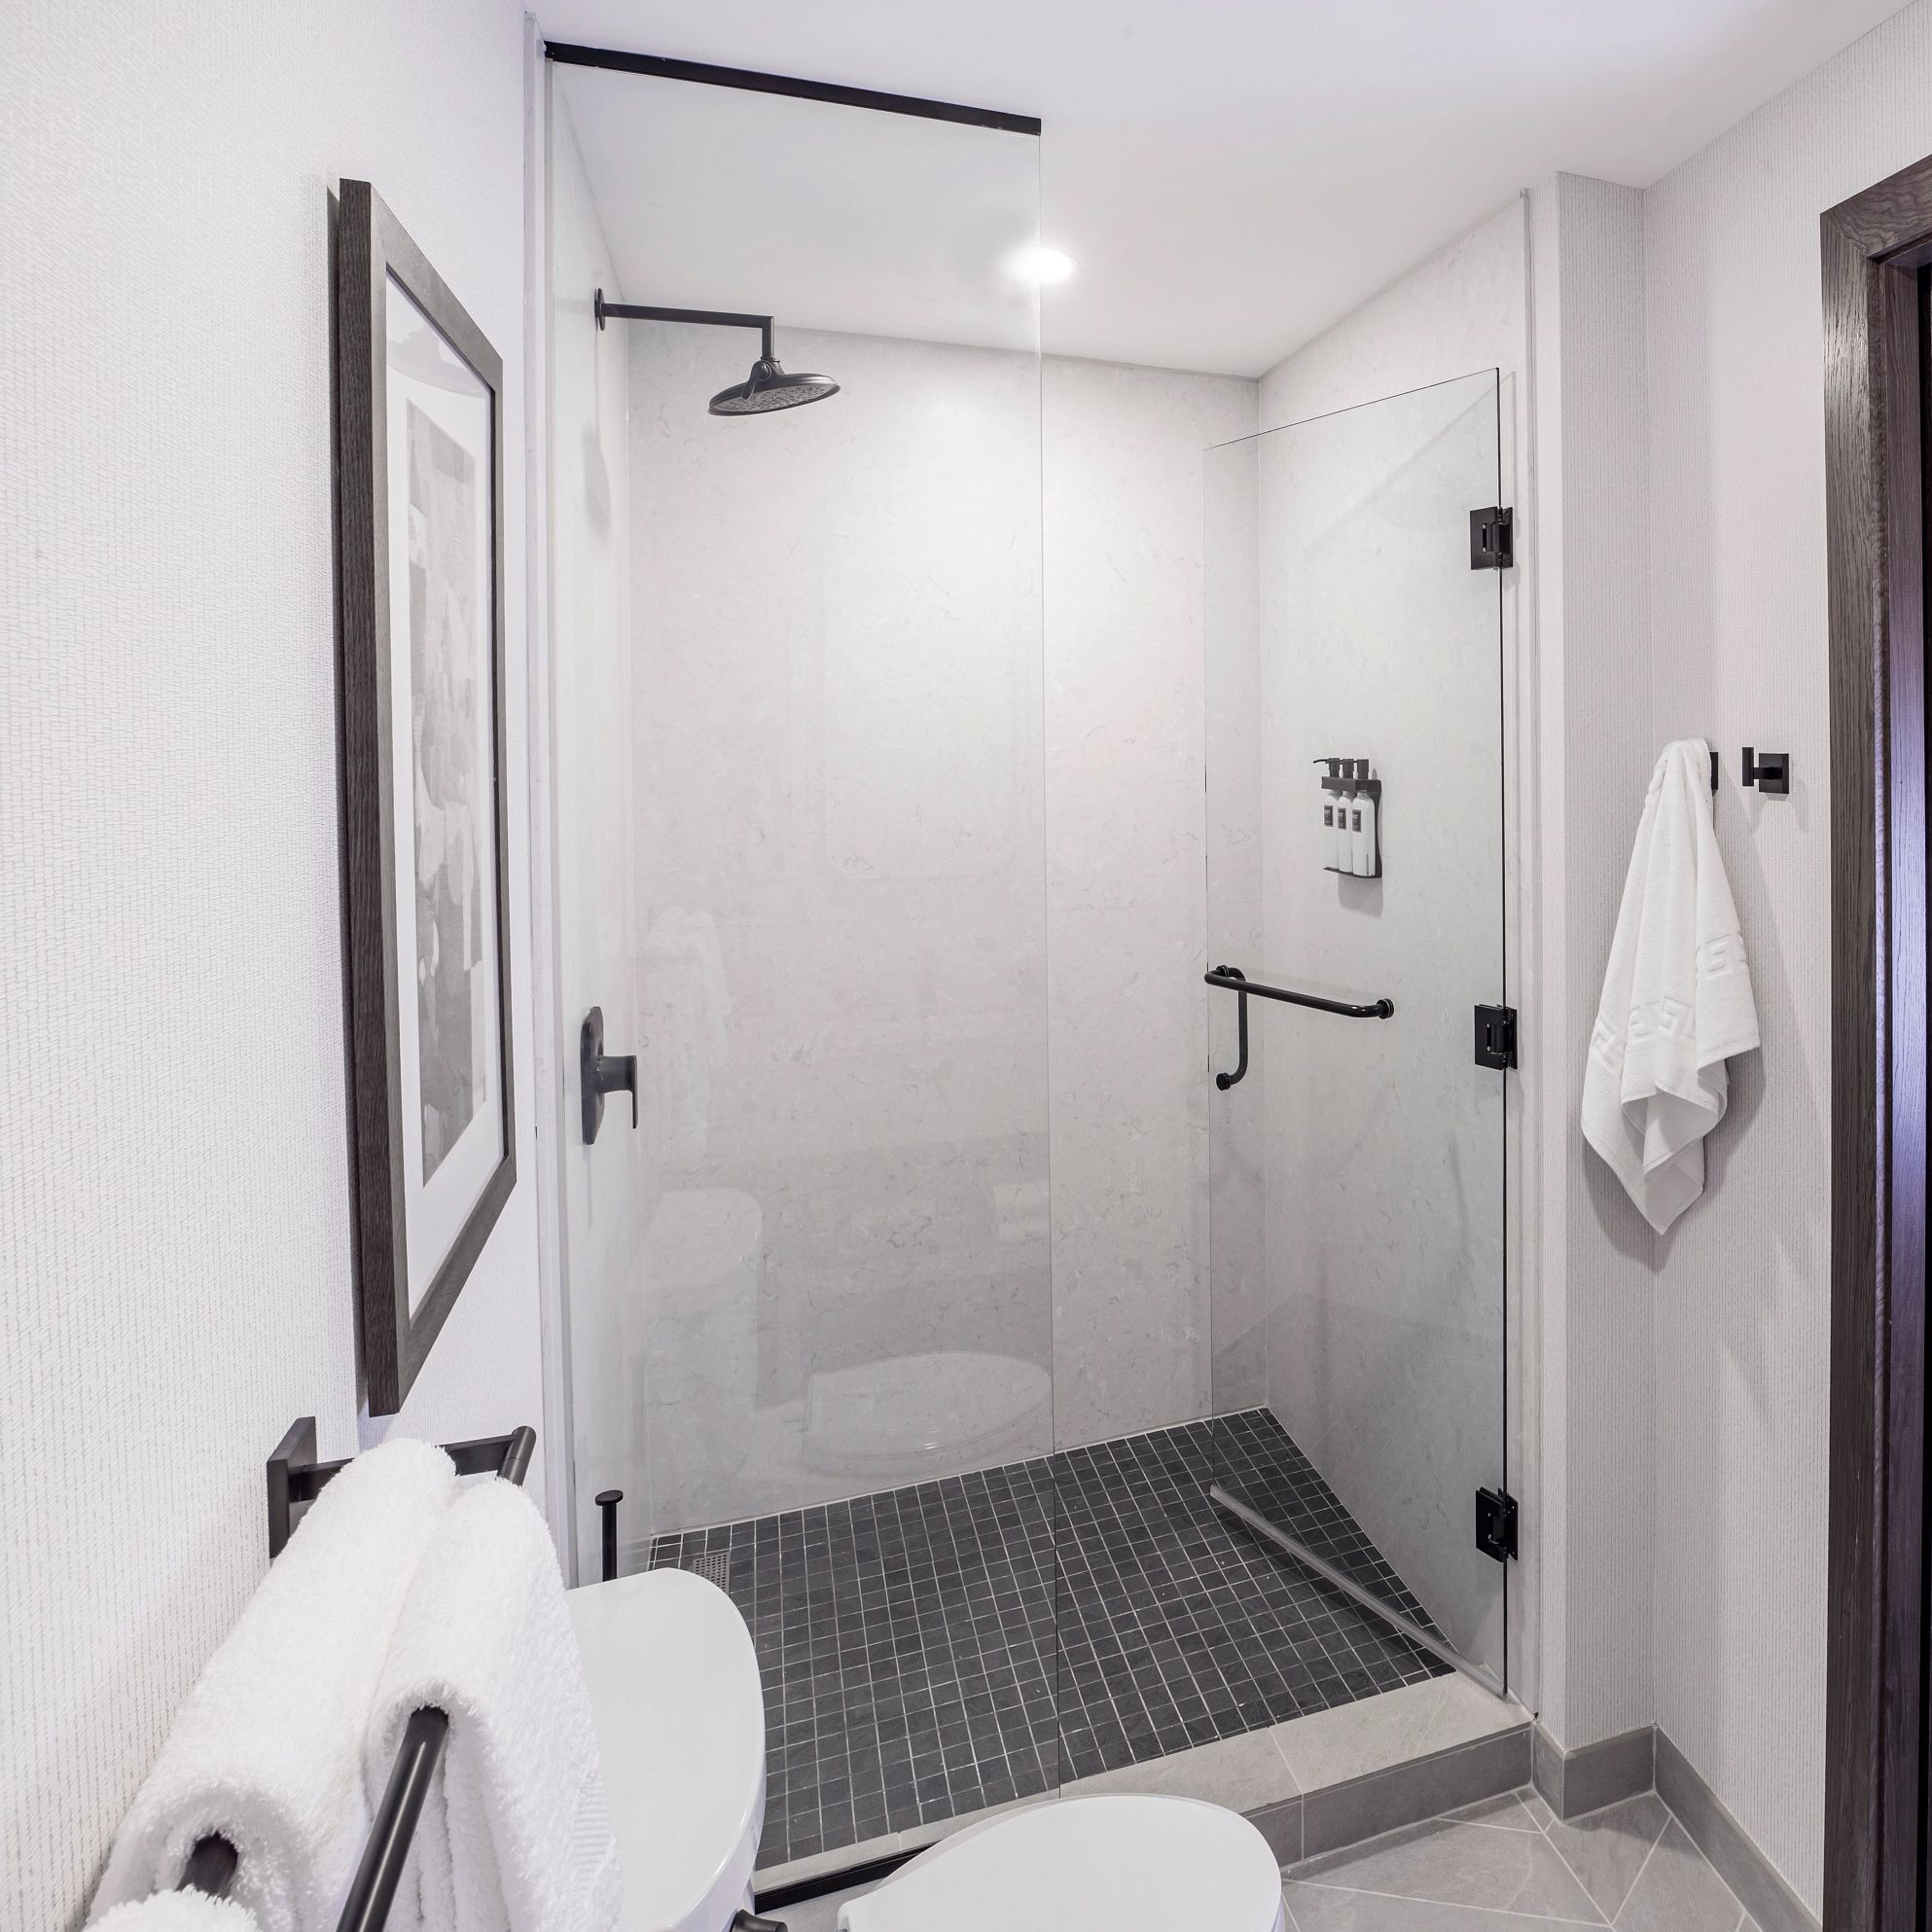 A picture containing wall, indoor, bathroom, white  Description automatically generated